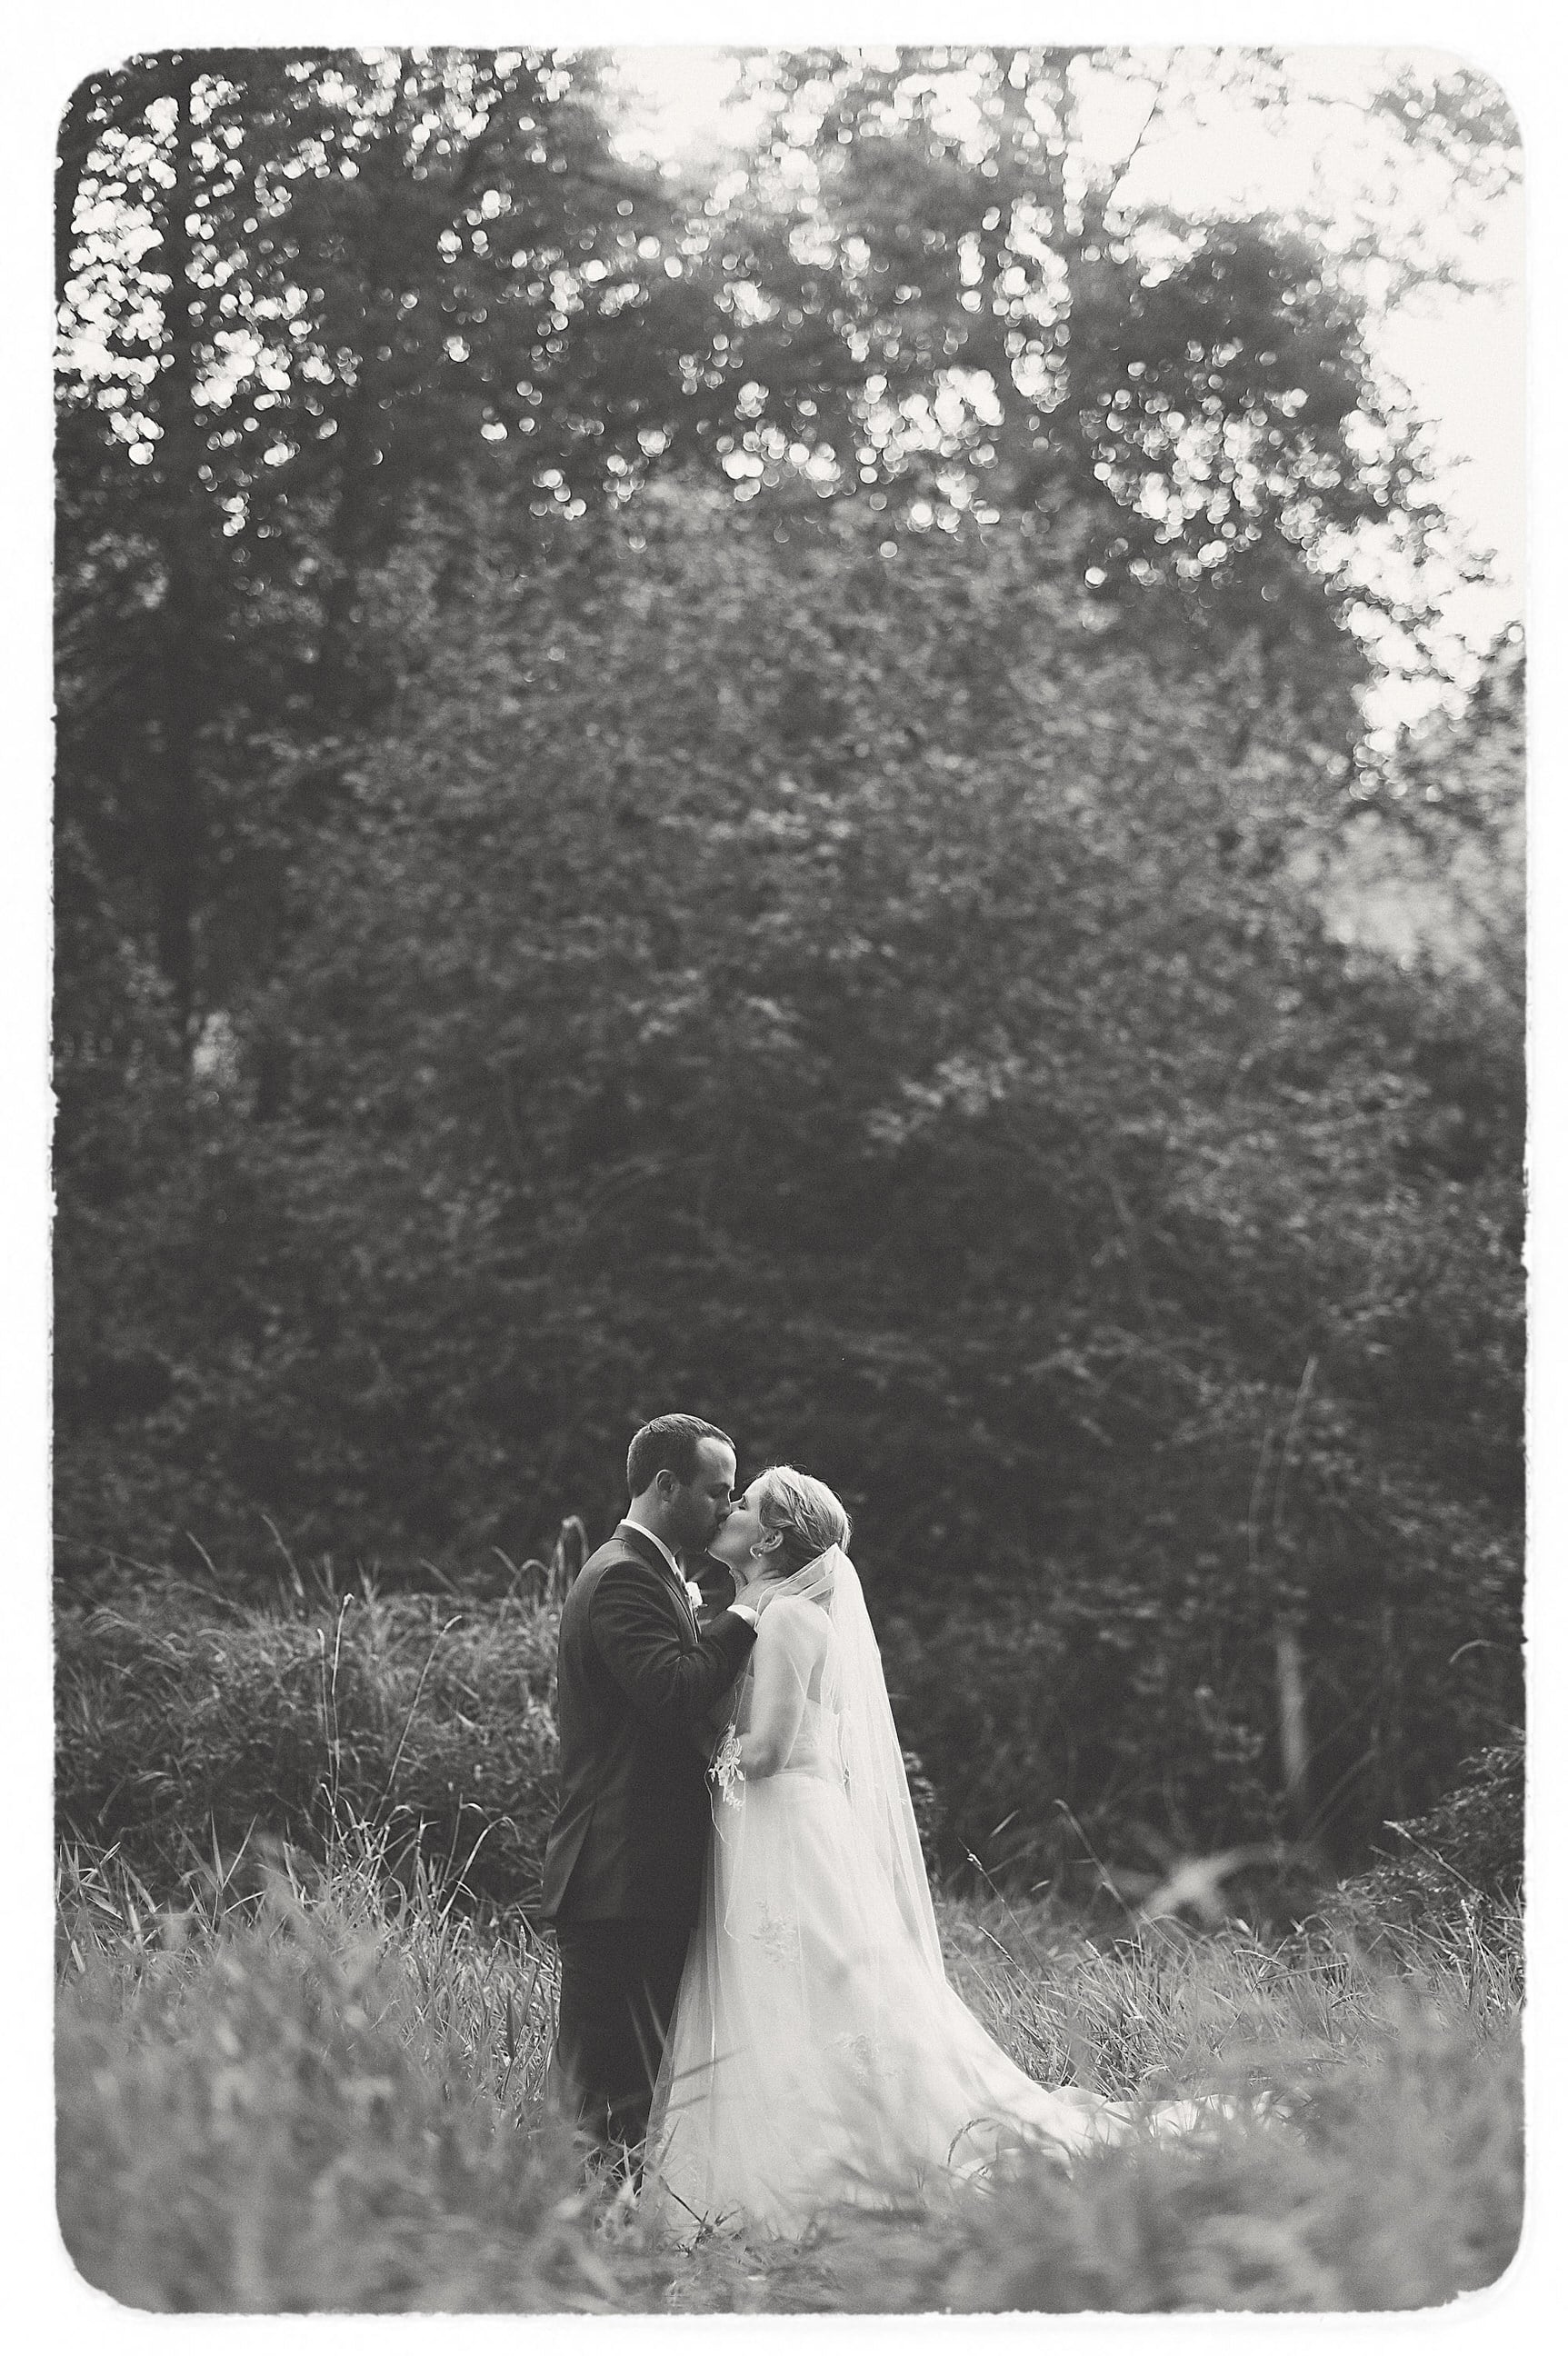 506 Kate&Marc-Wedding-B&WCollection-506Film.jpg